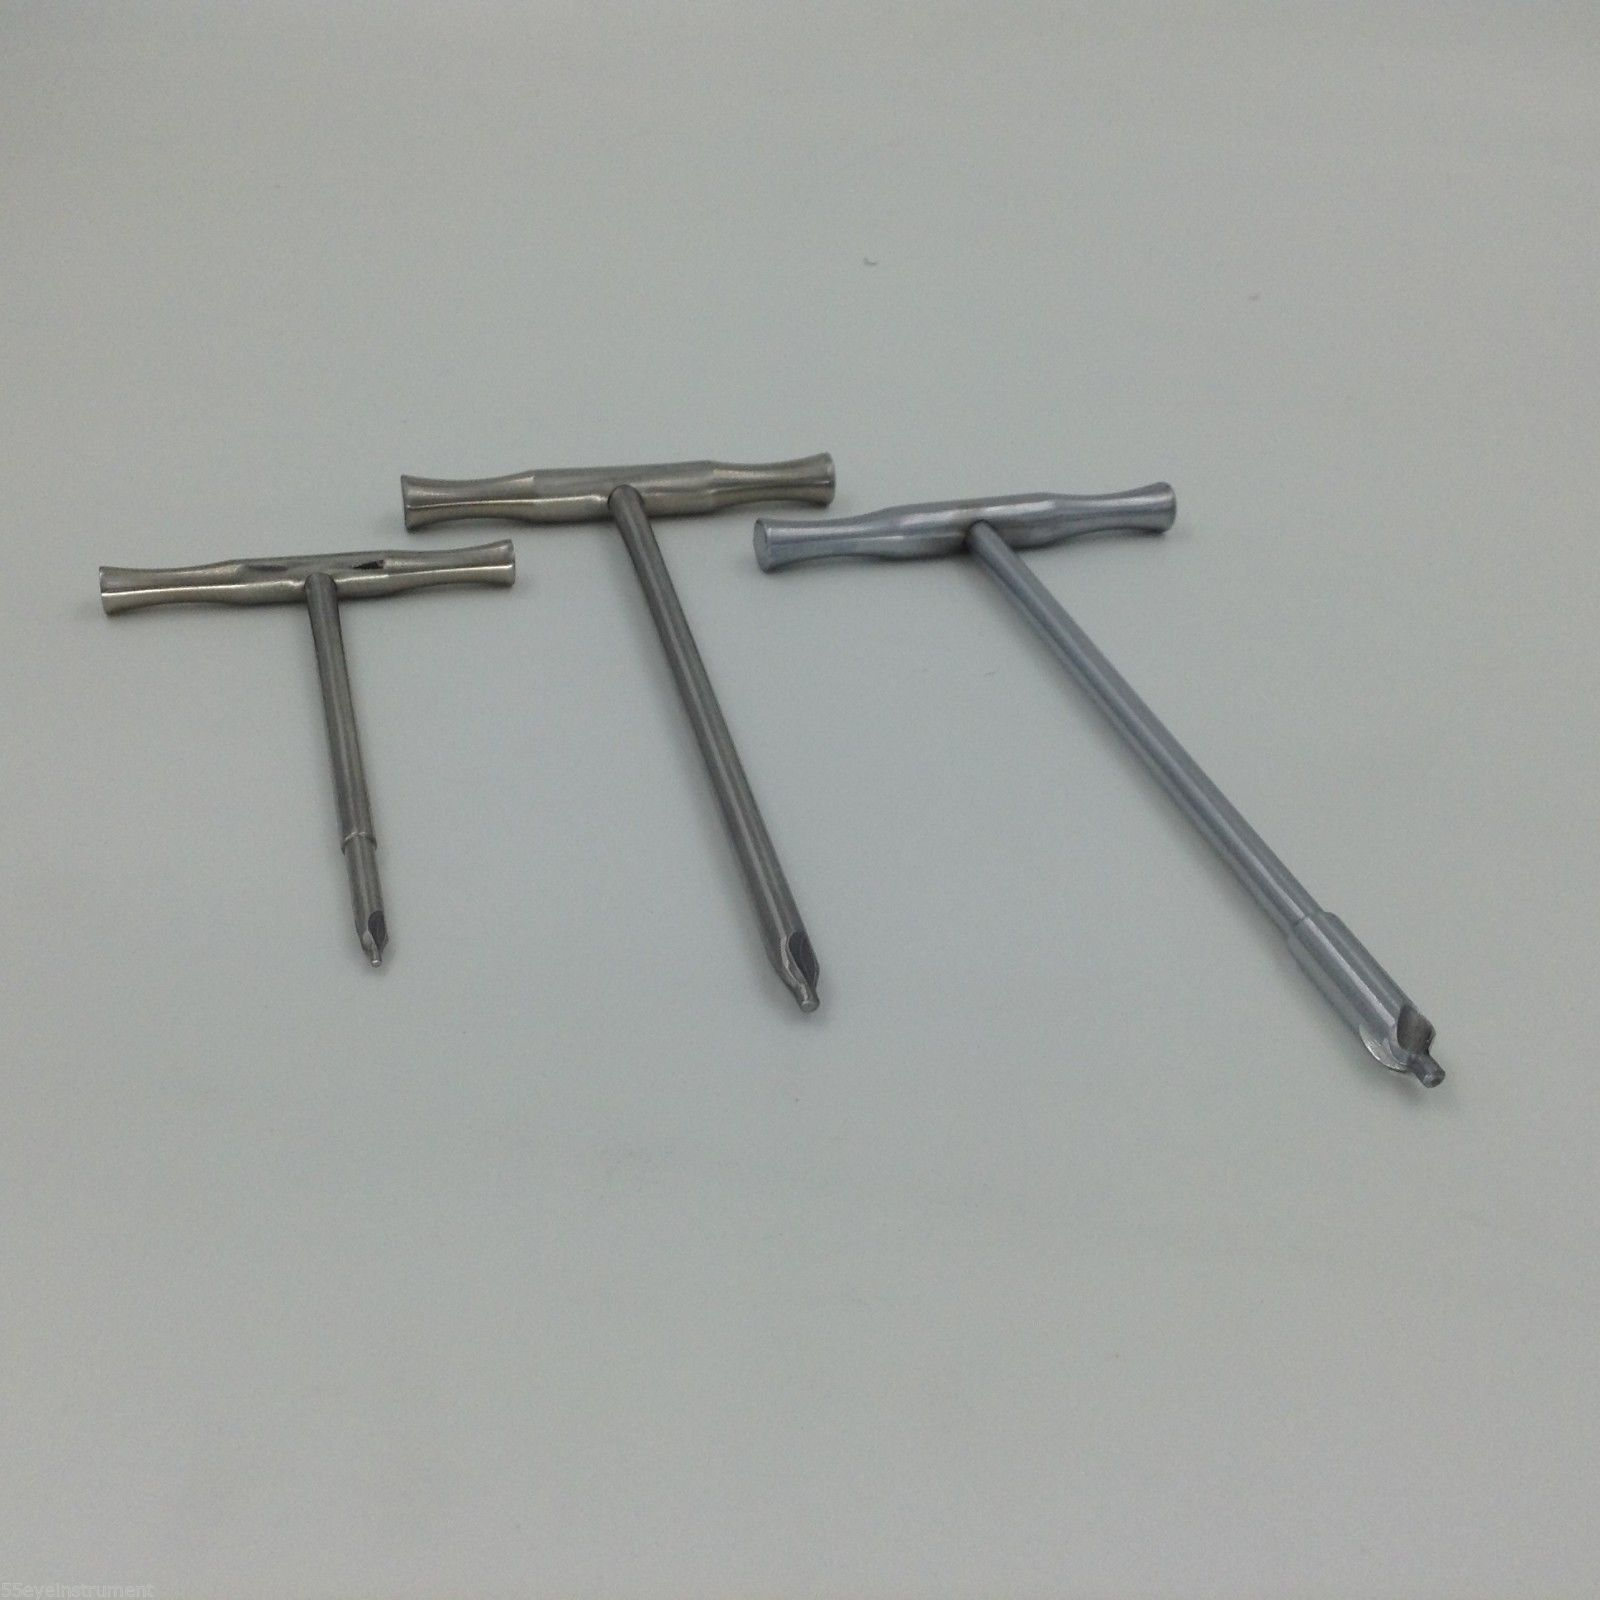 3 pcs Reamer with T-handle 4mm 6mm 8mm tip orthopedics Veterinary instrument high quality 1pcs 2mm 4mm 6mm 8mm wrapped handle t shape 6mm hex bit tip hexagon wrench hand tool bolt driver new screwdriver